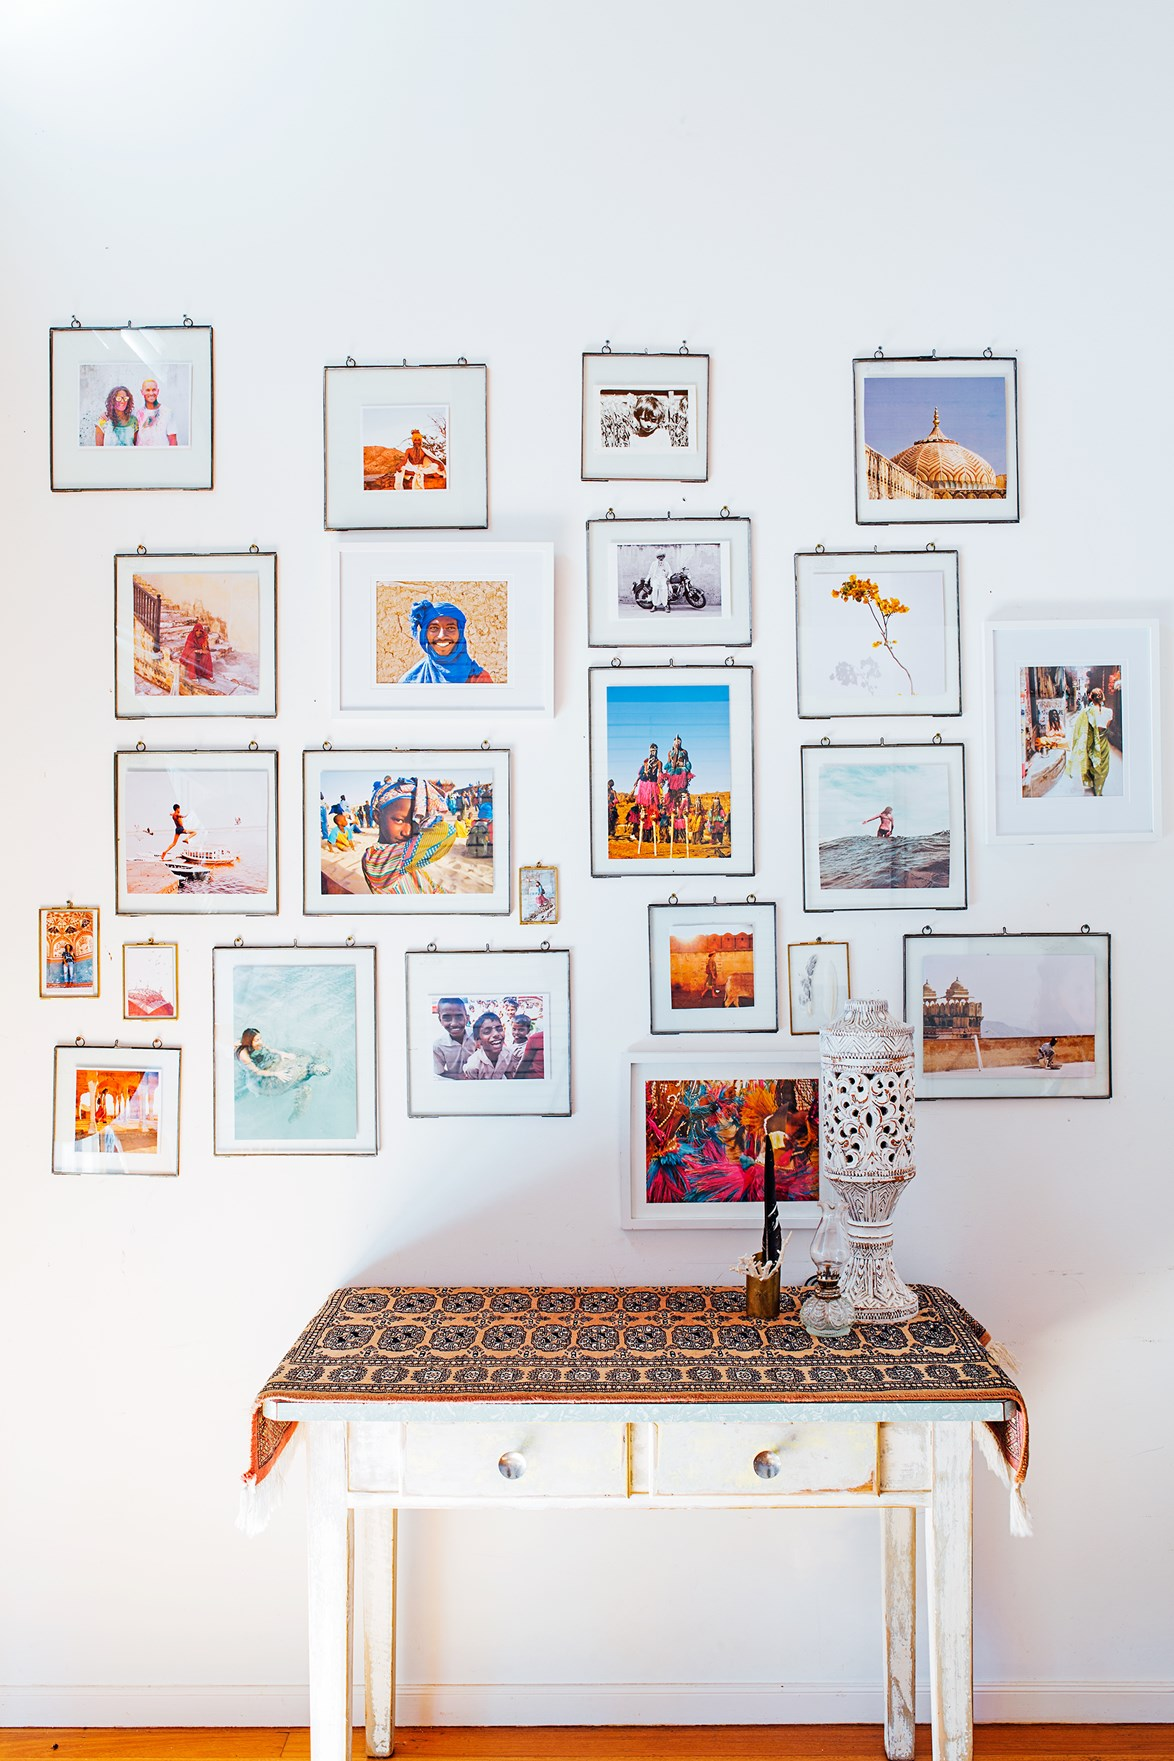 Vibrant travel photos are on display in this treasure-filled home. The simple brass frames allow the snaps, taken in Mali, India and Vanuatu, to shine. You could do the same with family photos.